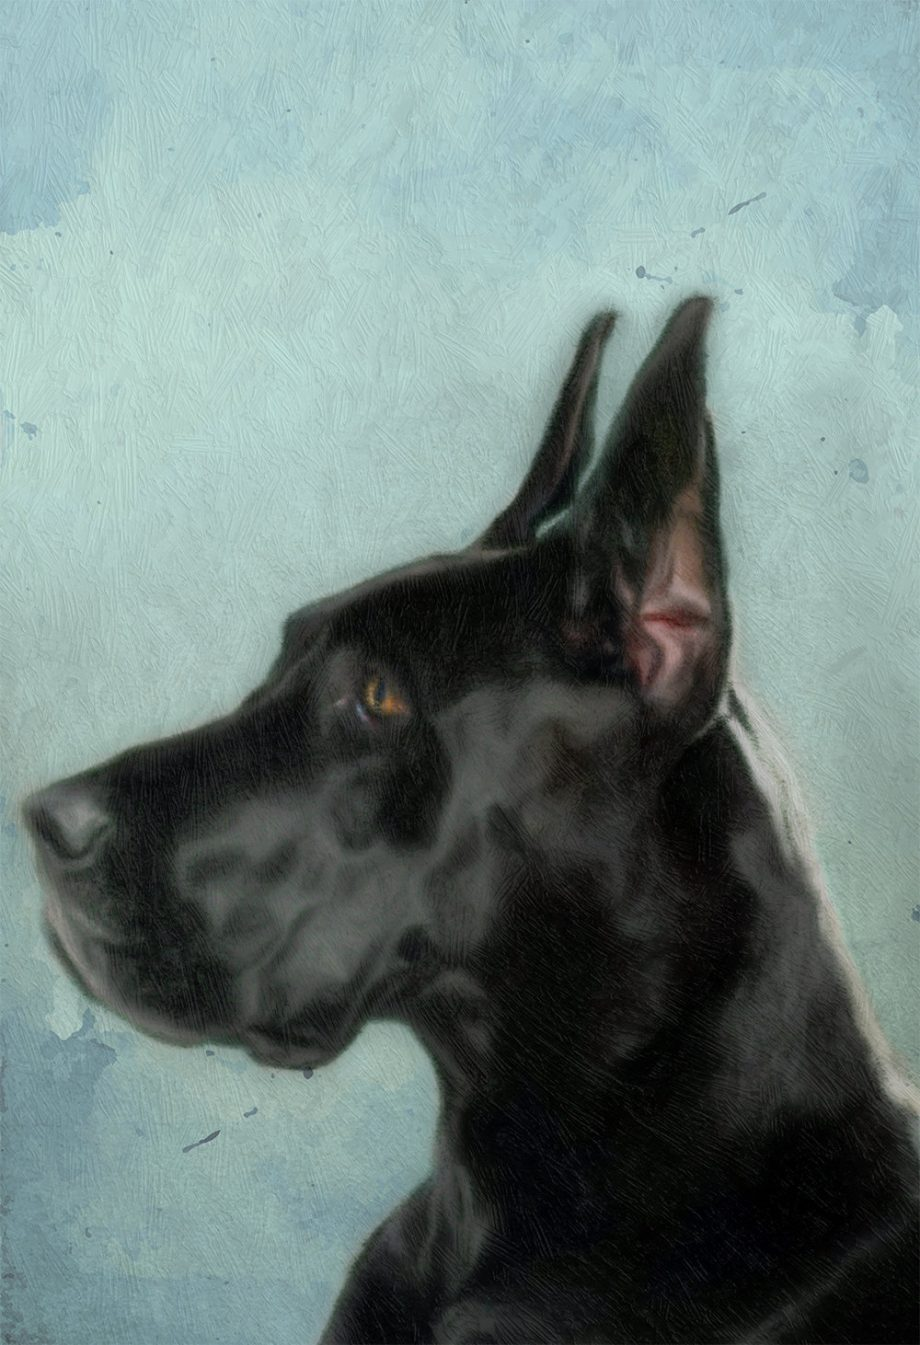 Great Dane Dog Print illustration Art Print Poster Giclee on Cotton Canvas and Satin Photo Paper